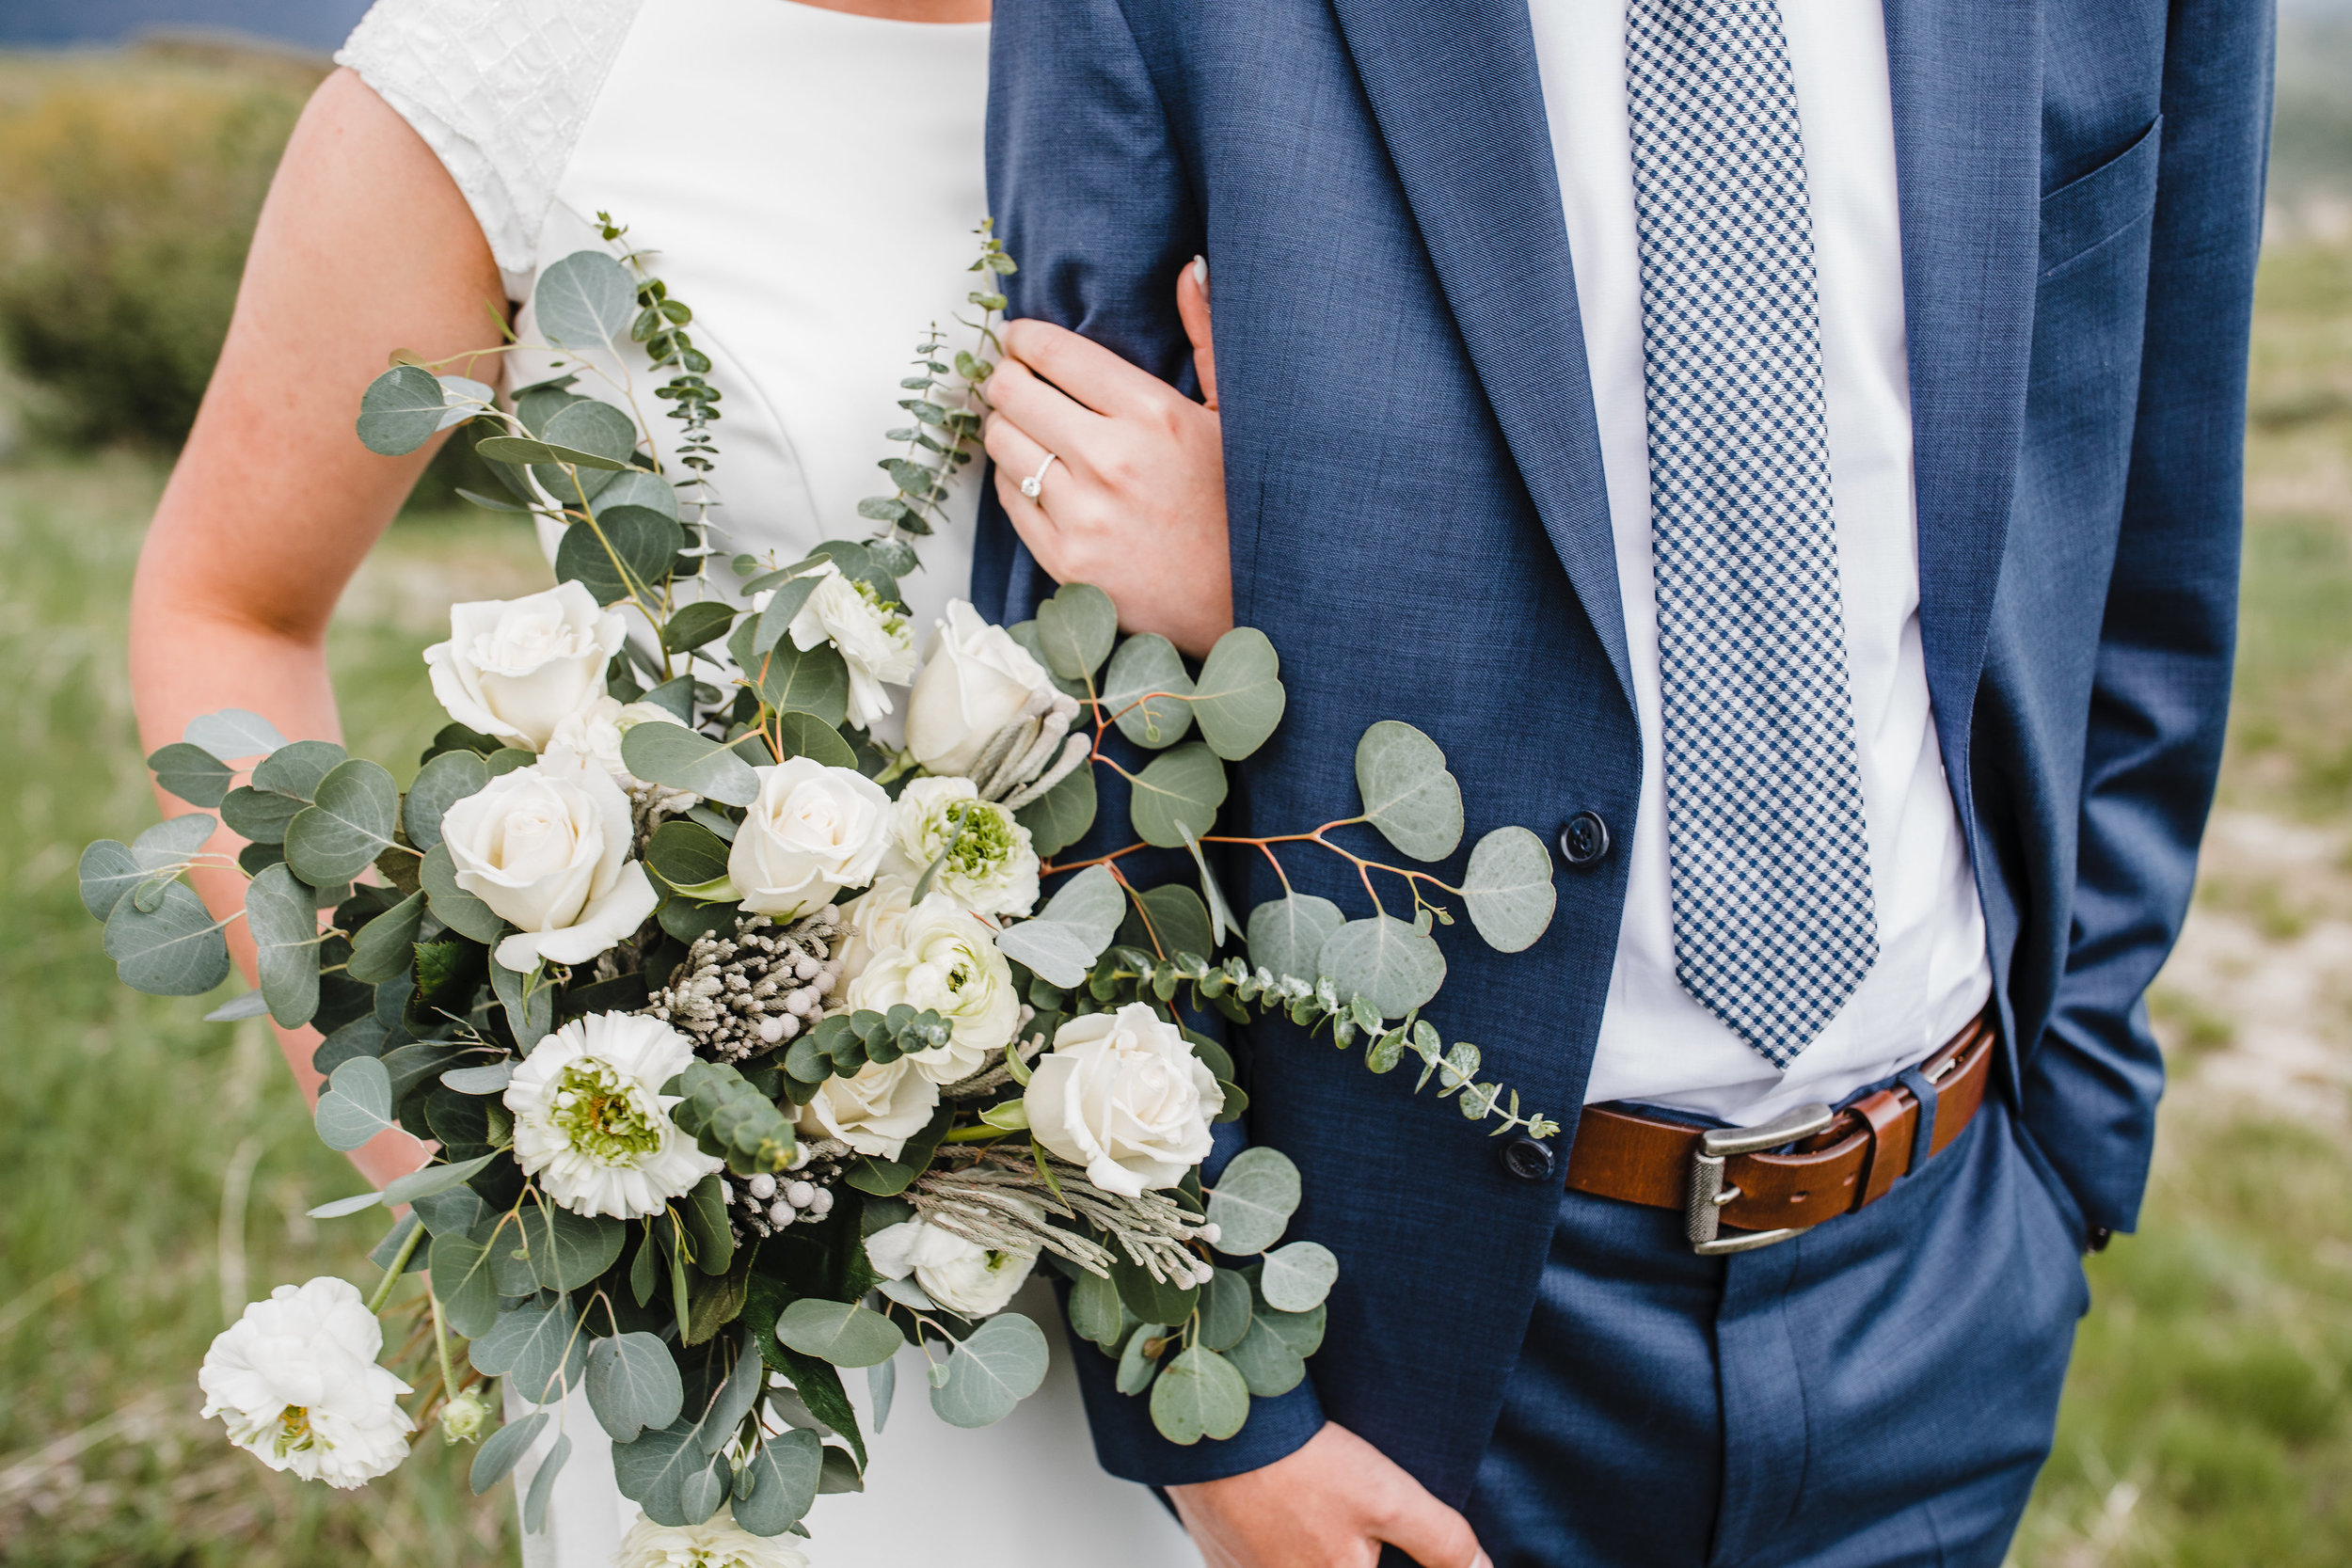 professional wedding photographer in boulder co captures all the details of your wedding day navy suit bouquet